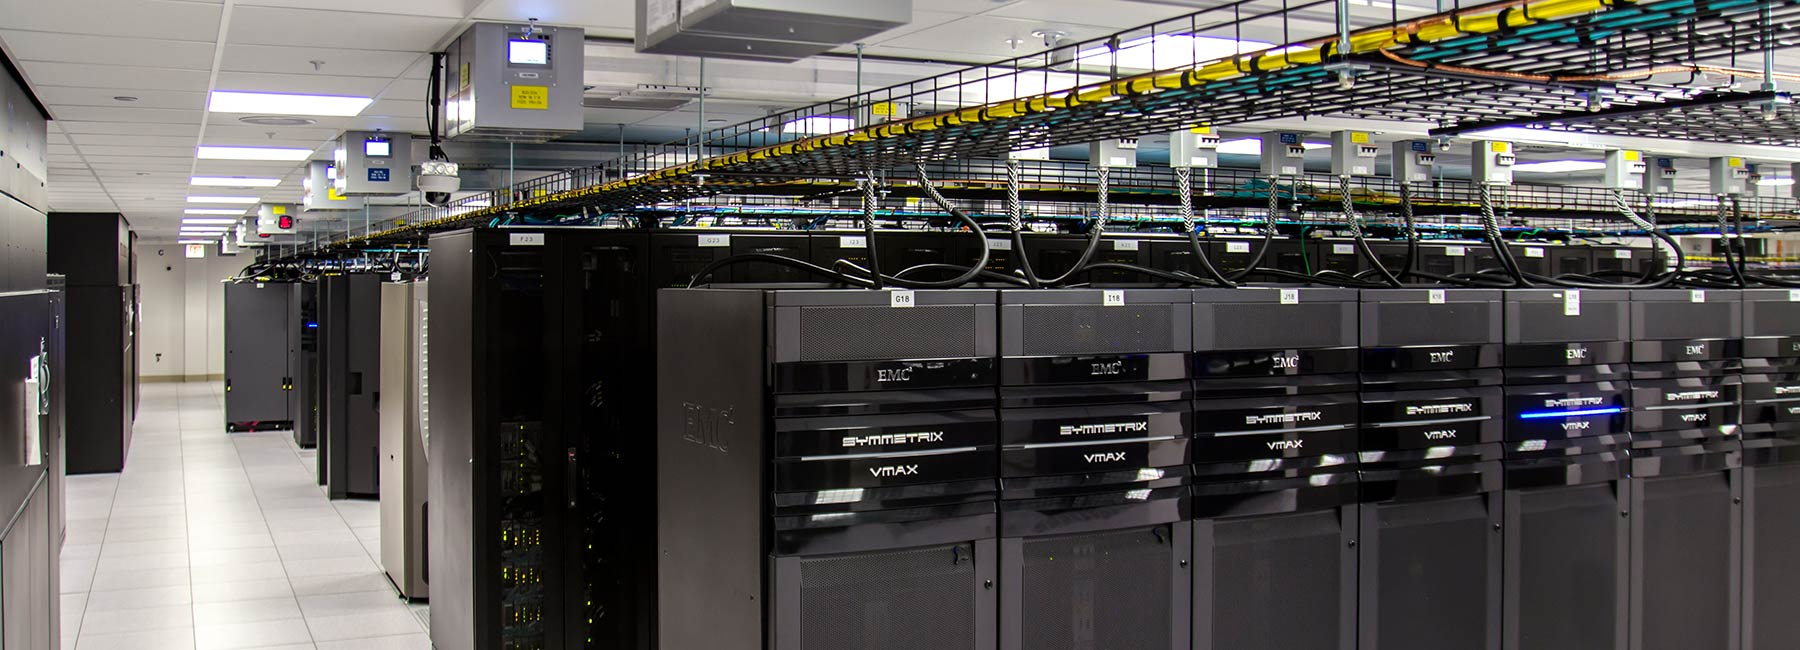 Minneapolis Mechanical & Electrical Engineering Services - Egan Data Center